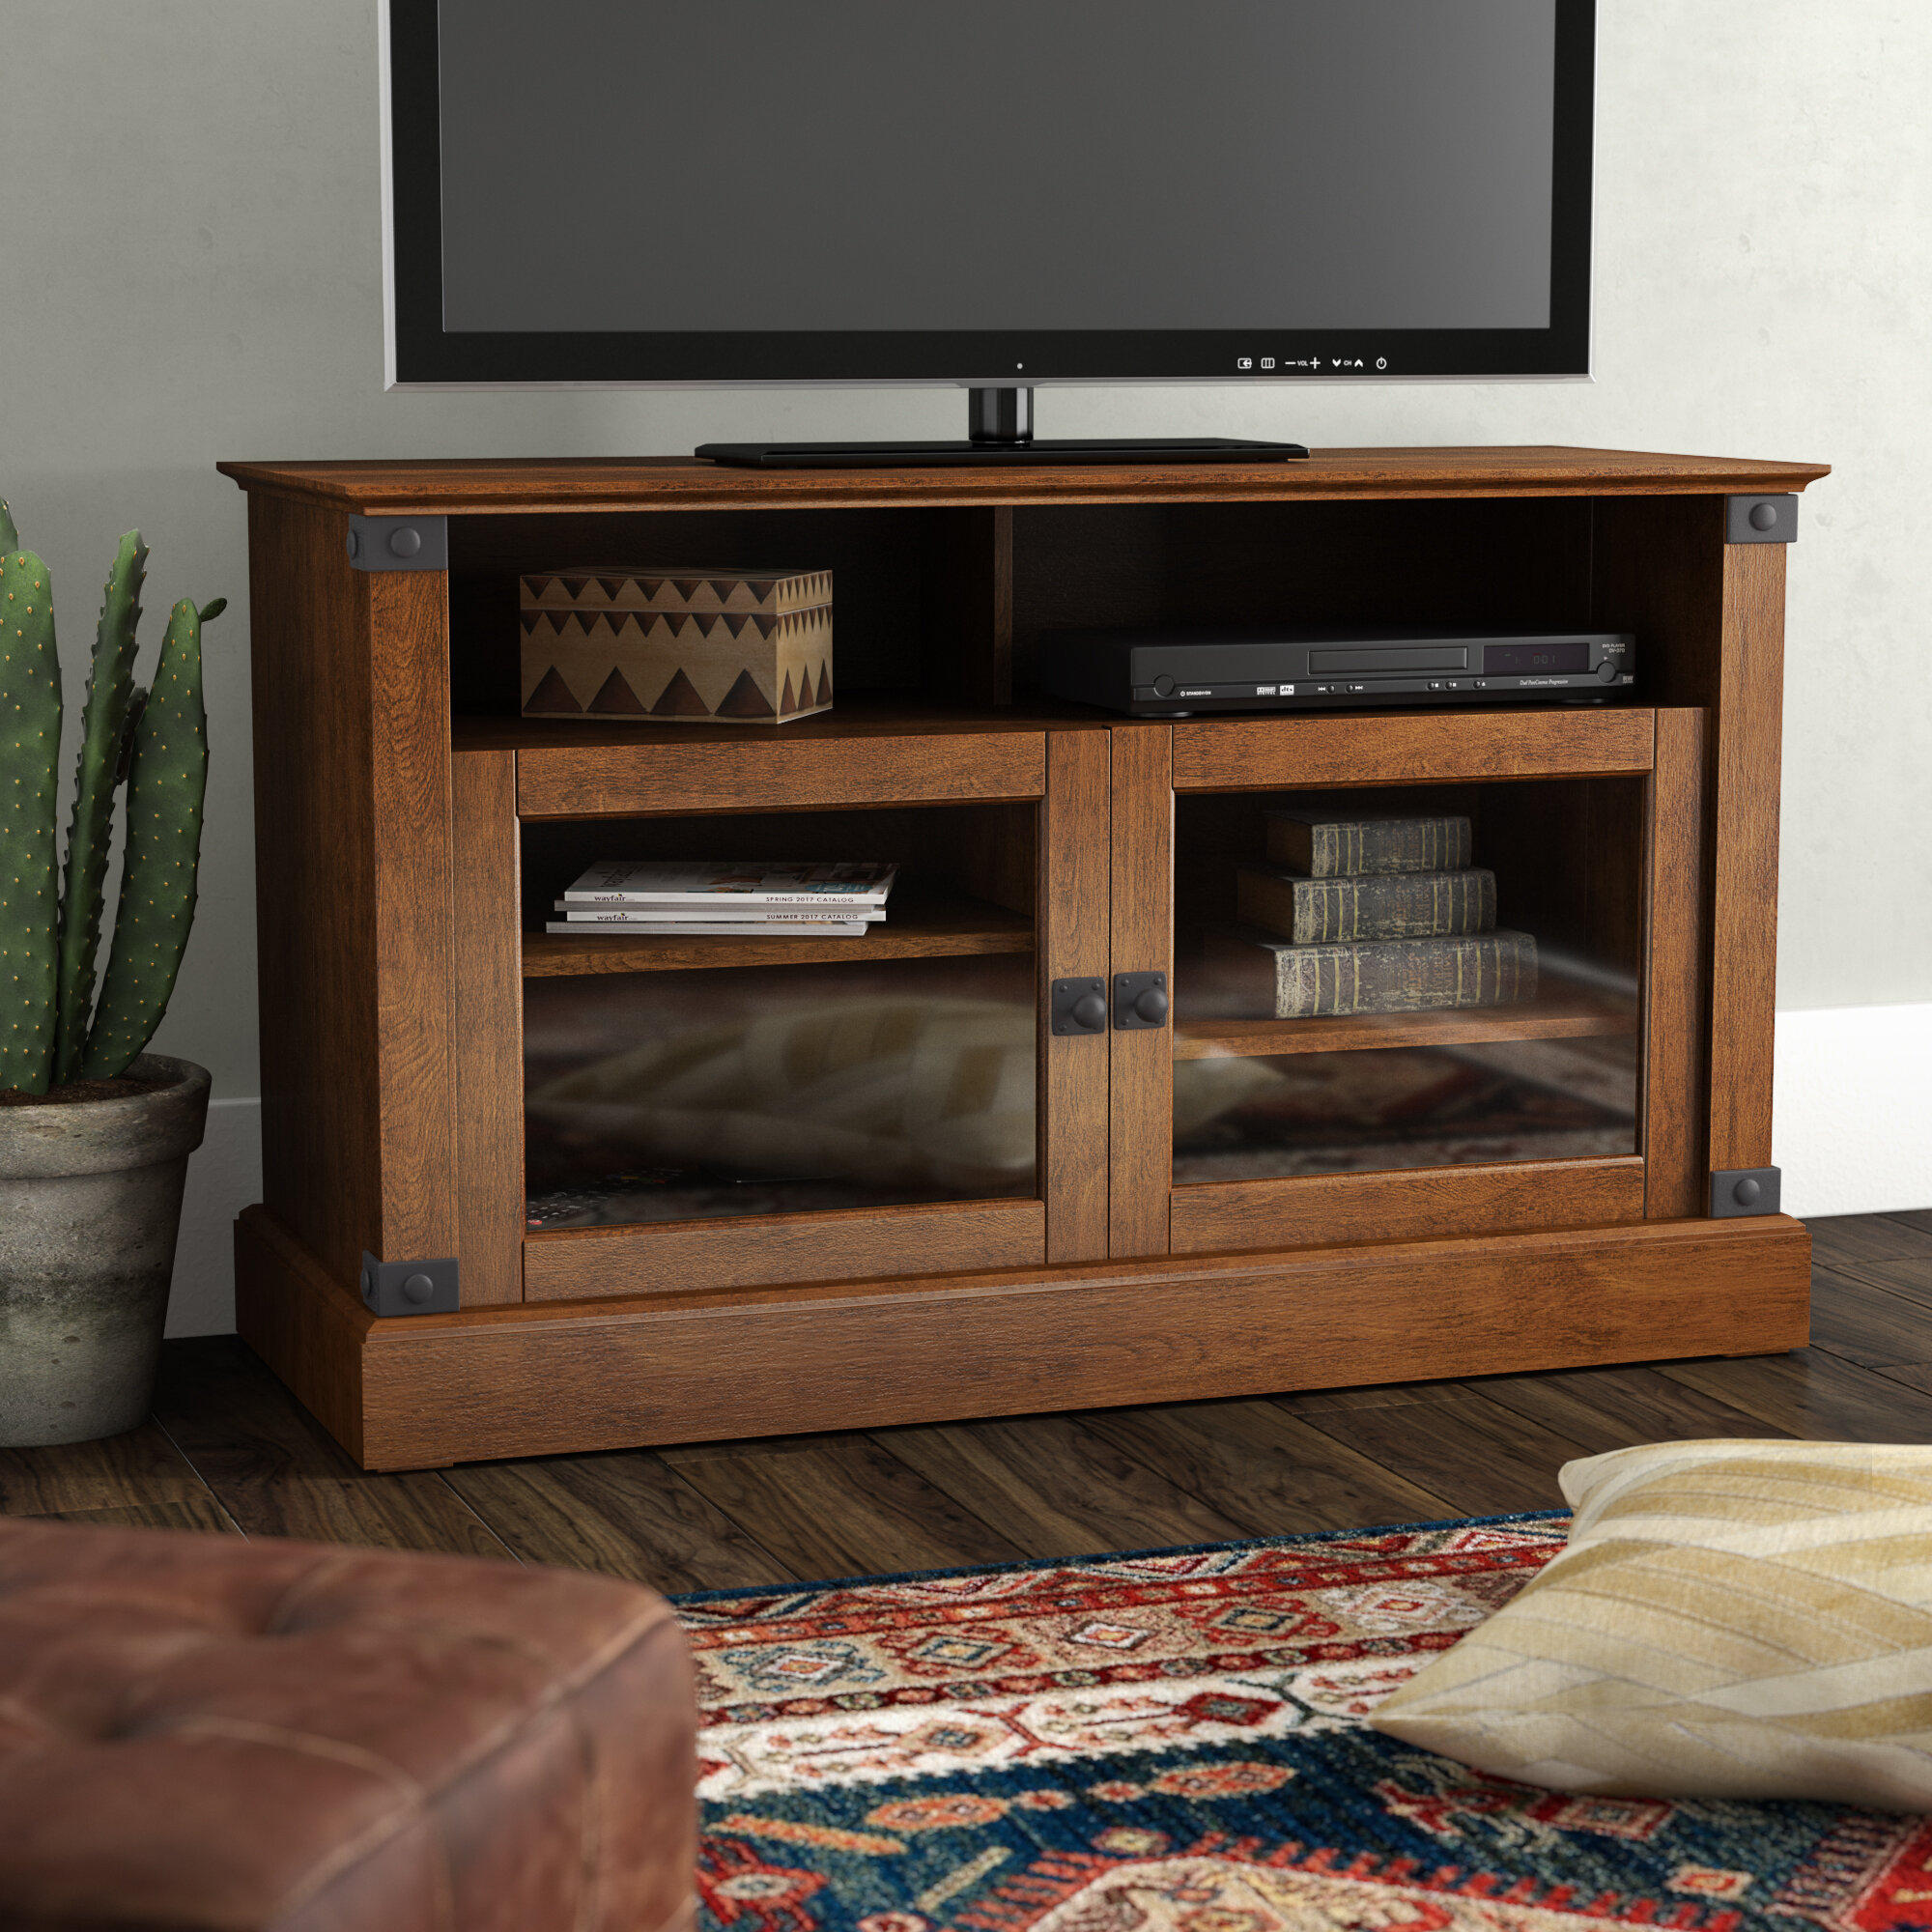 Trent Austin Design Chantrell Tv Stand For Tvs Up To 49 Reviews Wayfair